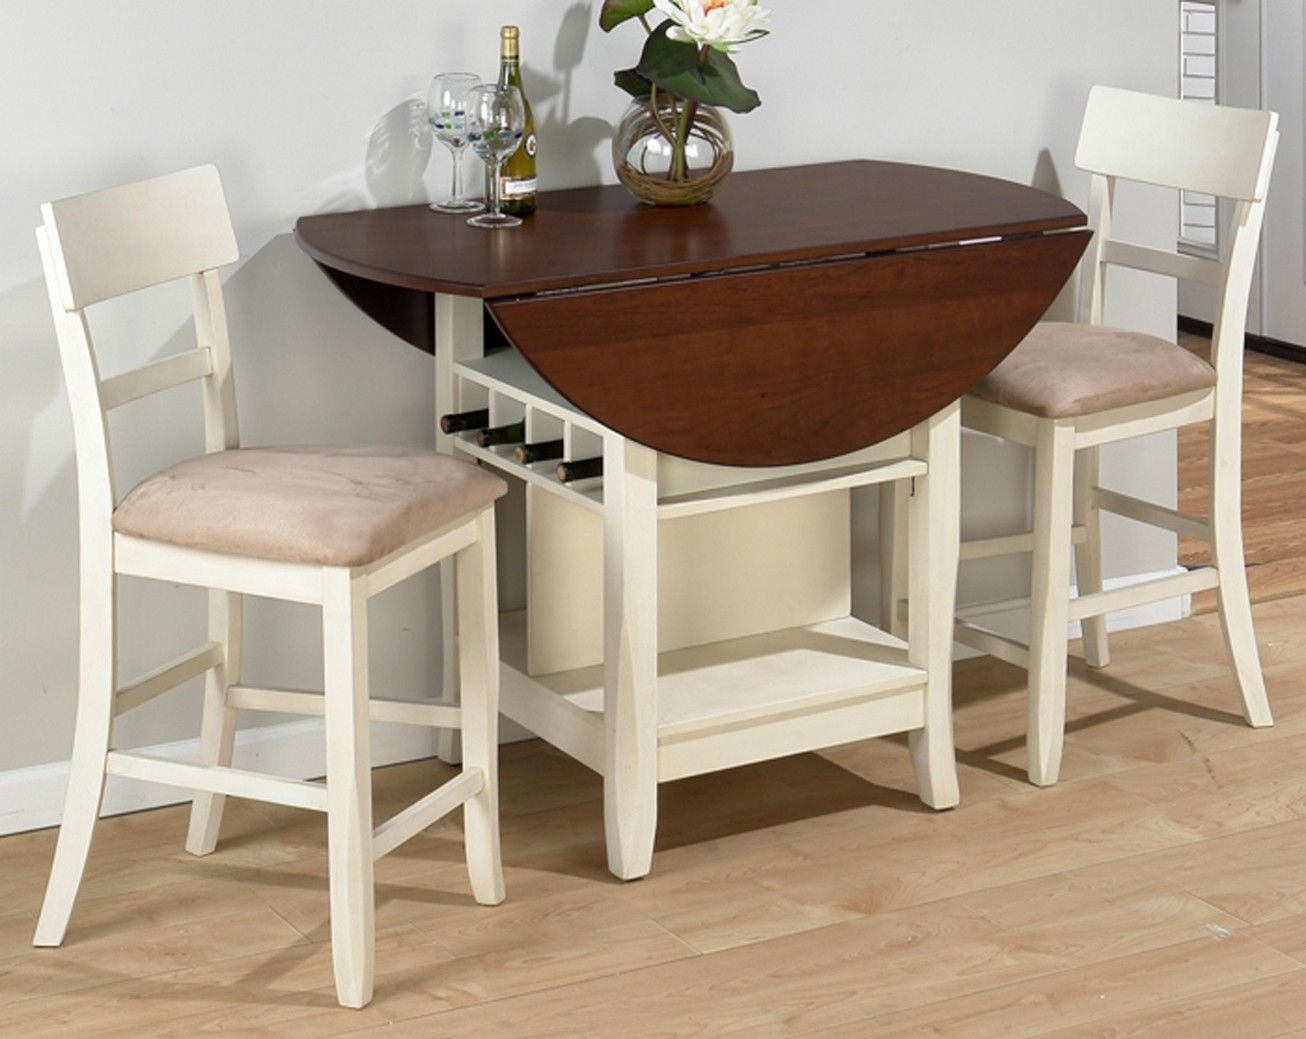 Kitchen Table And Chairs For Small Spaces The Best Options For